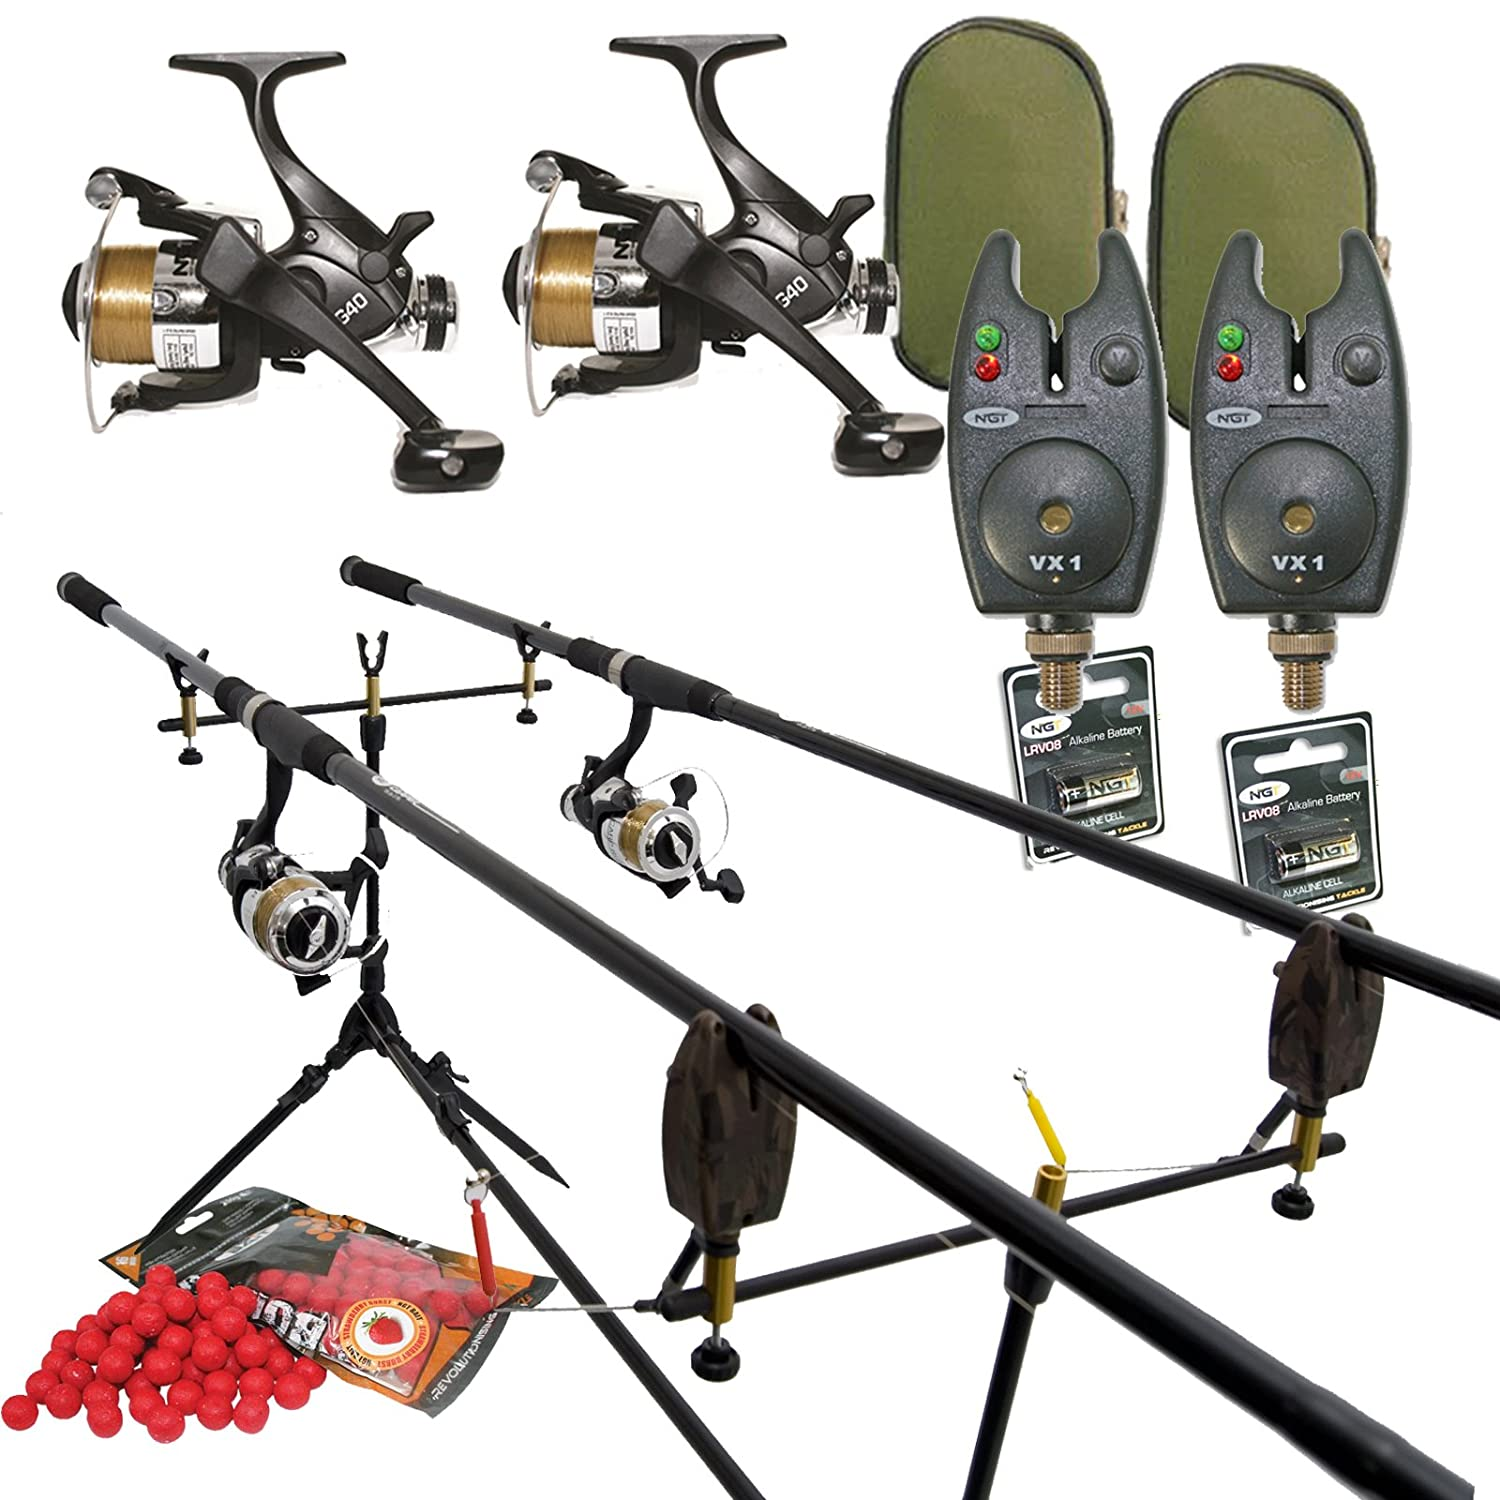 Full Carp Fishing Set Up Rods Reels Bite Alarms Rodpod PLUS ...